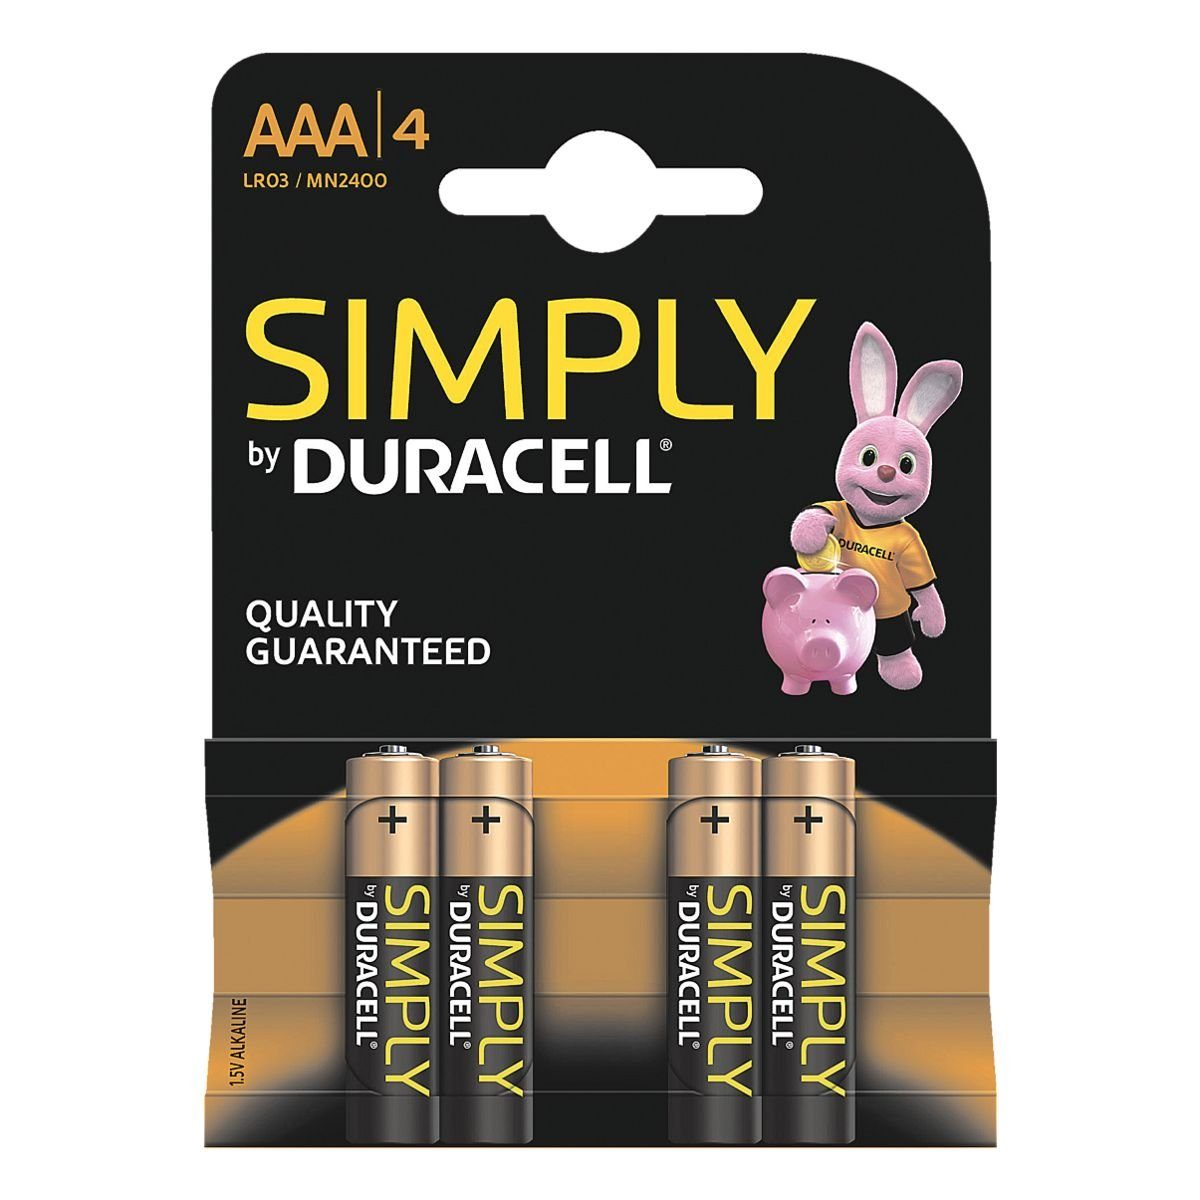 Duracell Batterien »Simply« Micro / AAA / LR03